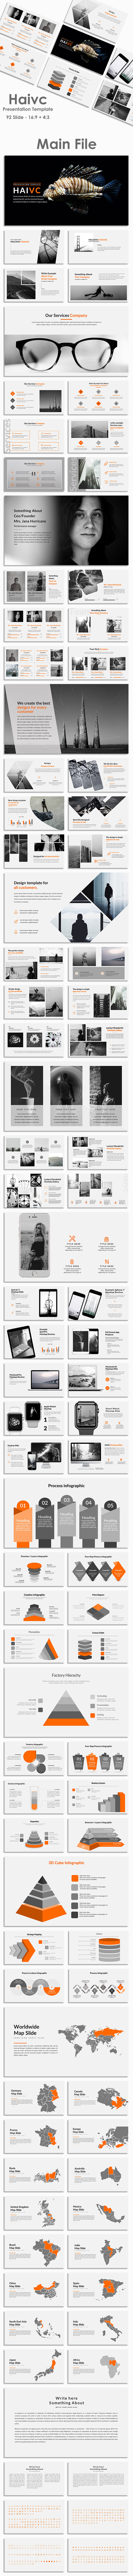 Haivc Multipurposte Google Slide Template - Google Slides Presentation Templates